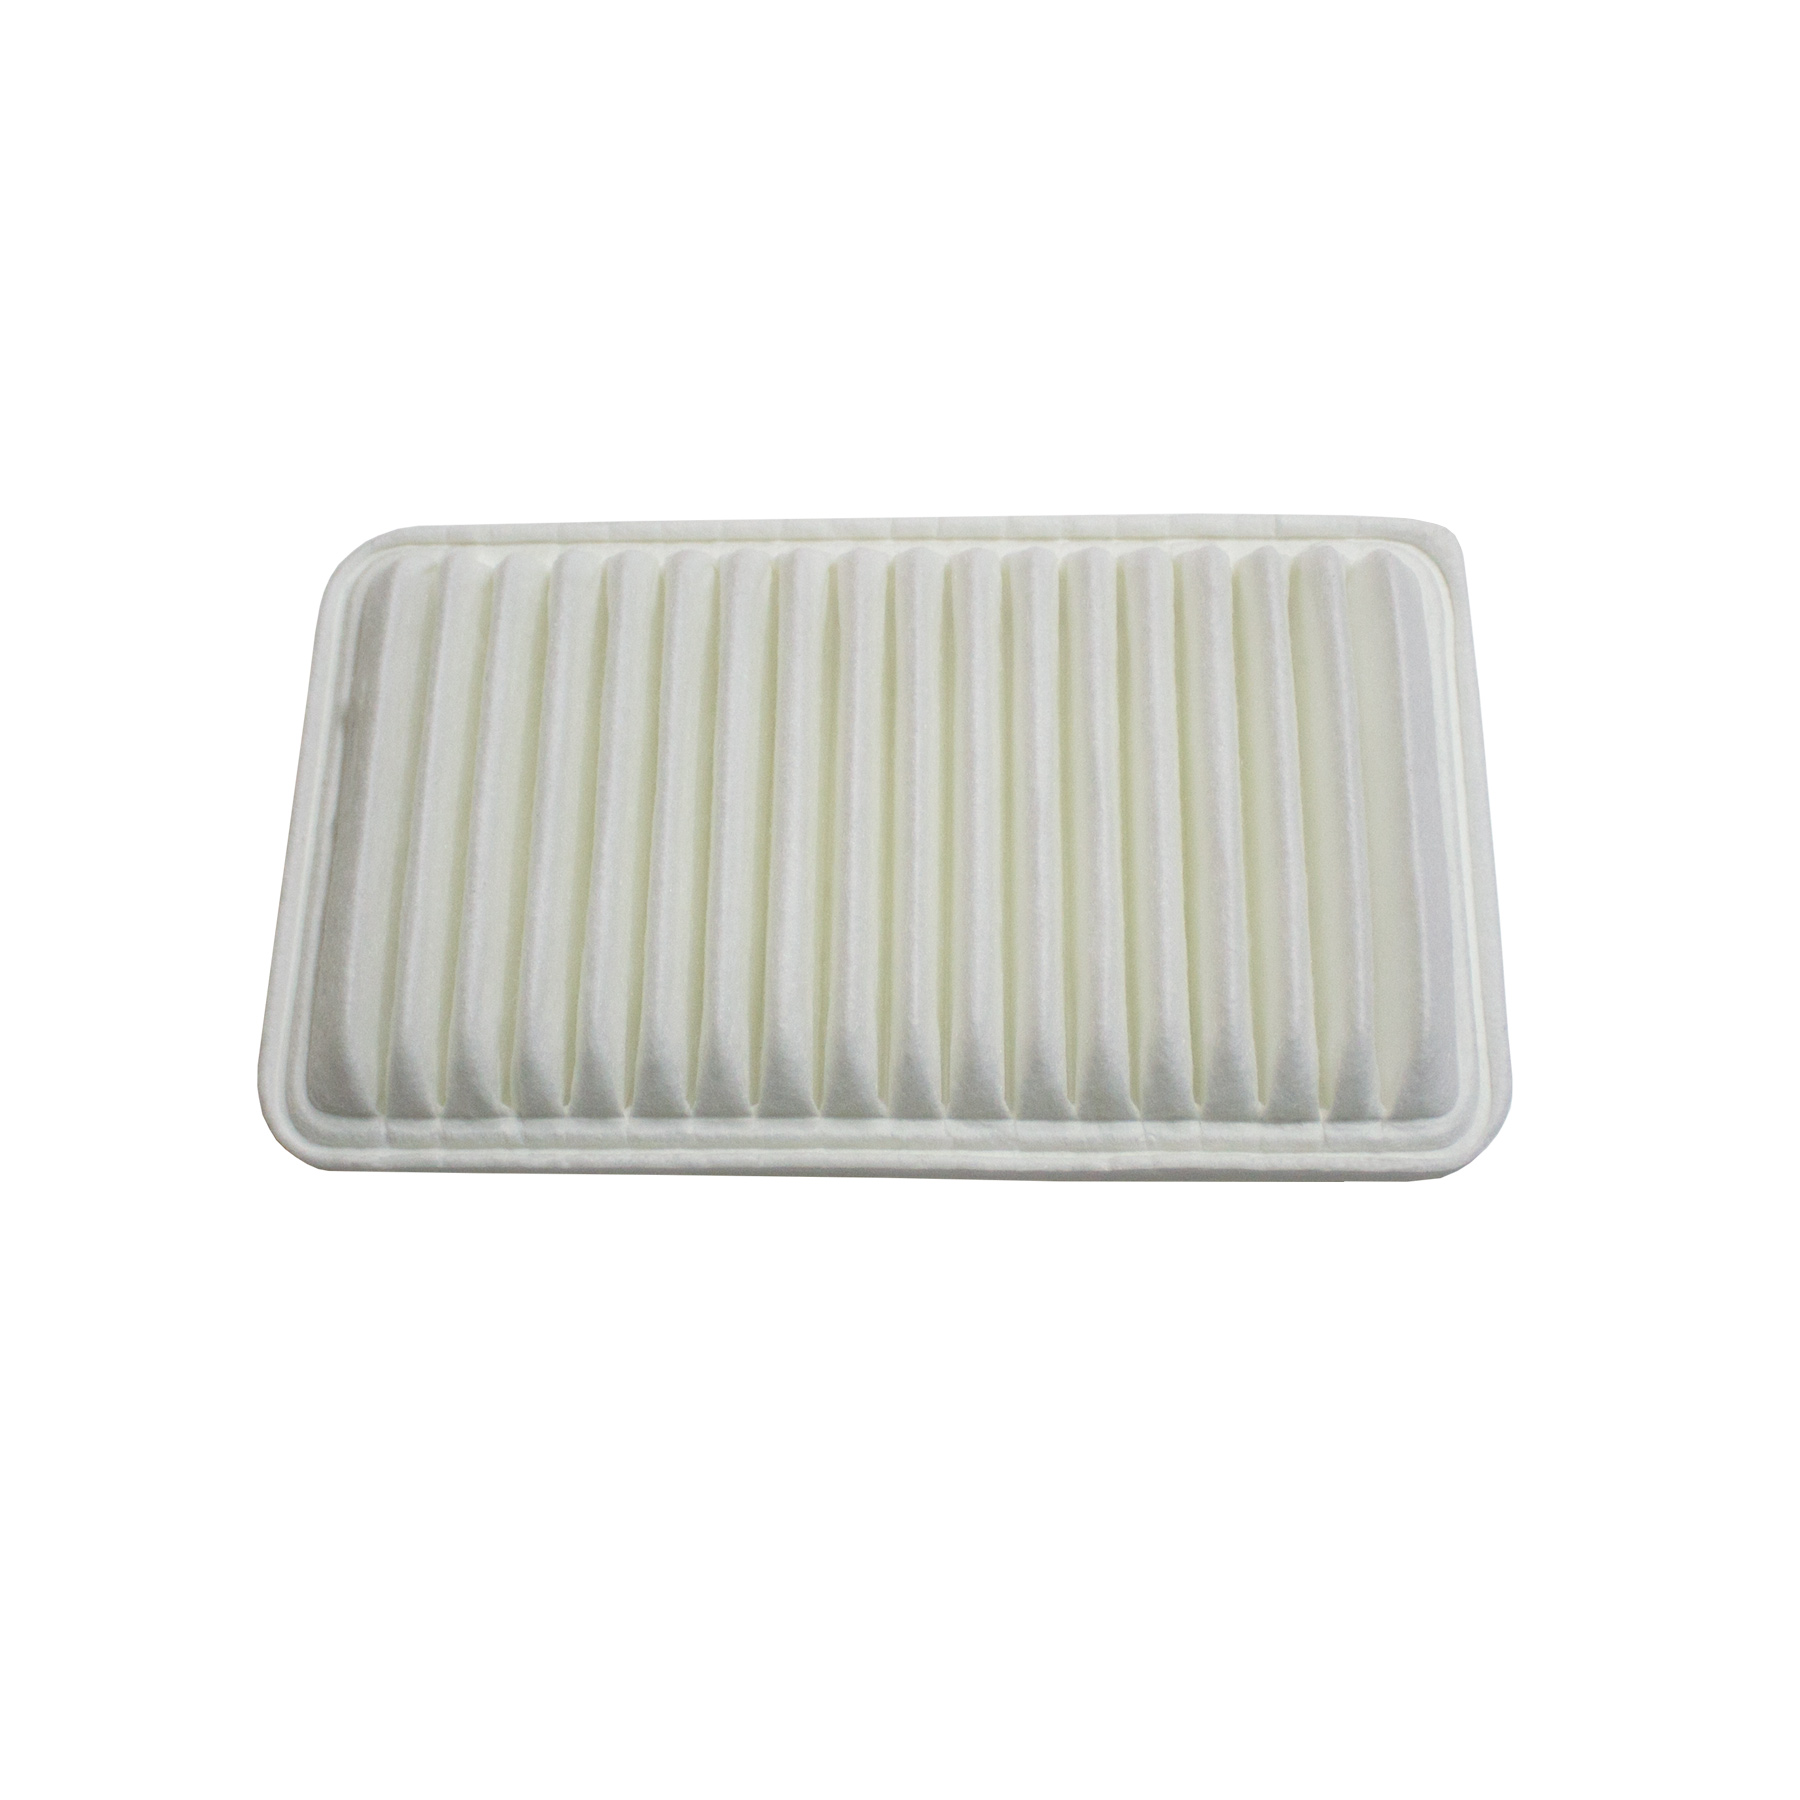 1pc Brand New Engine Air Filter Oe Quality Replacement